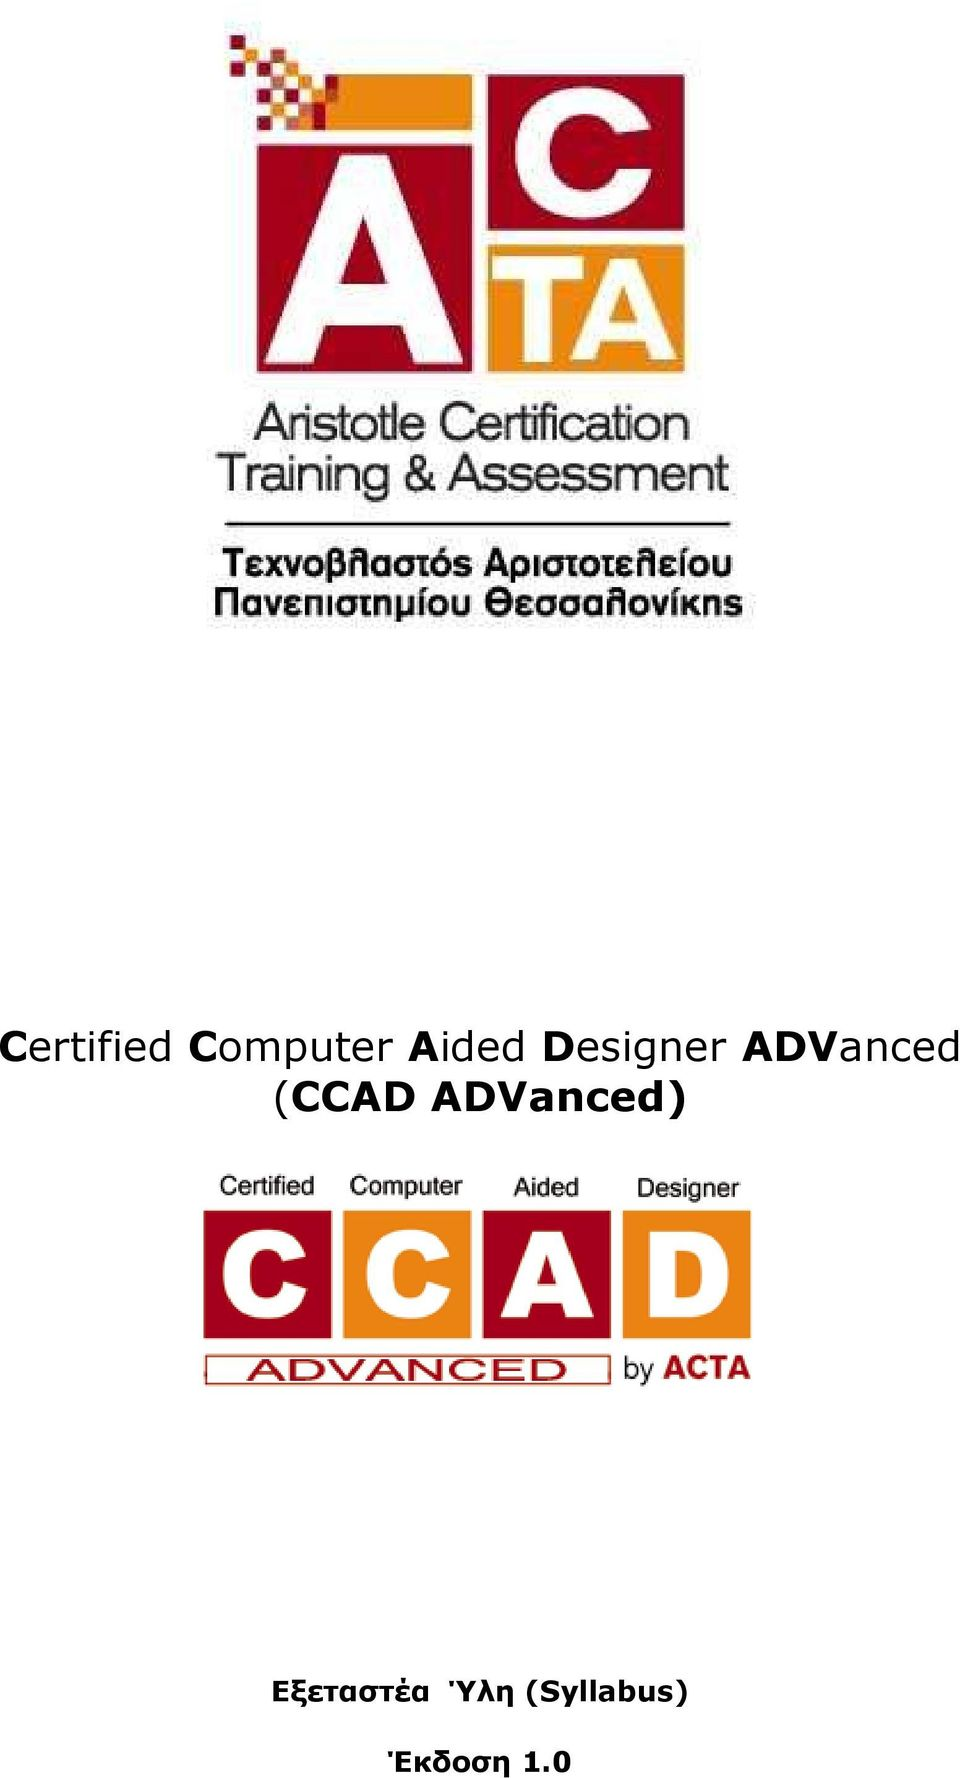 ADVanced (CCAD